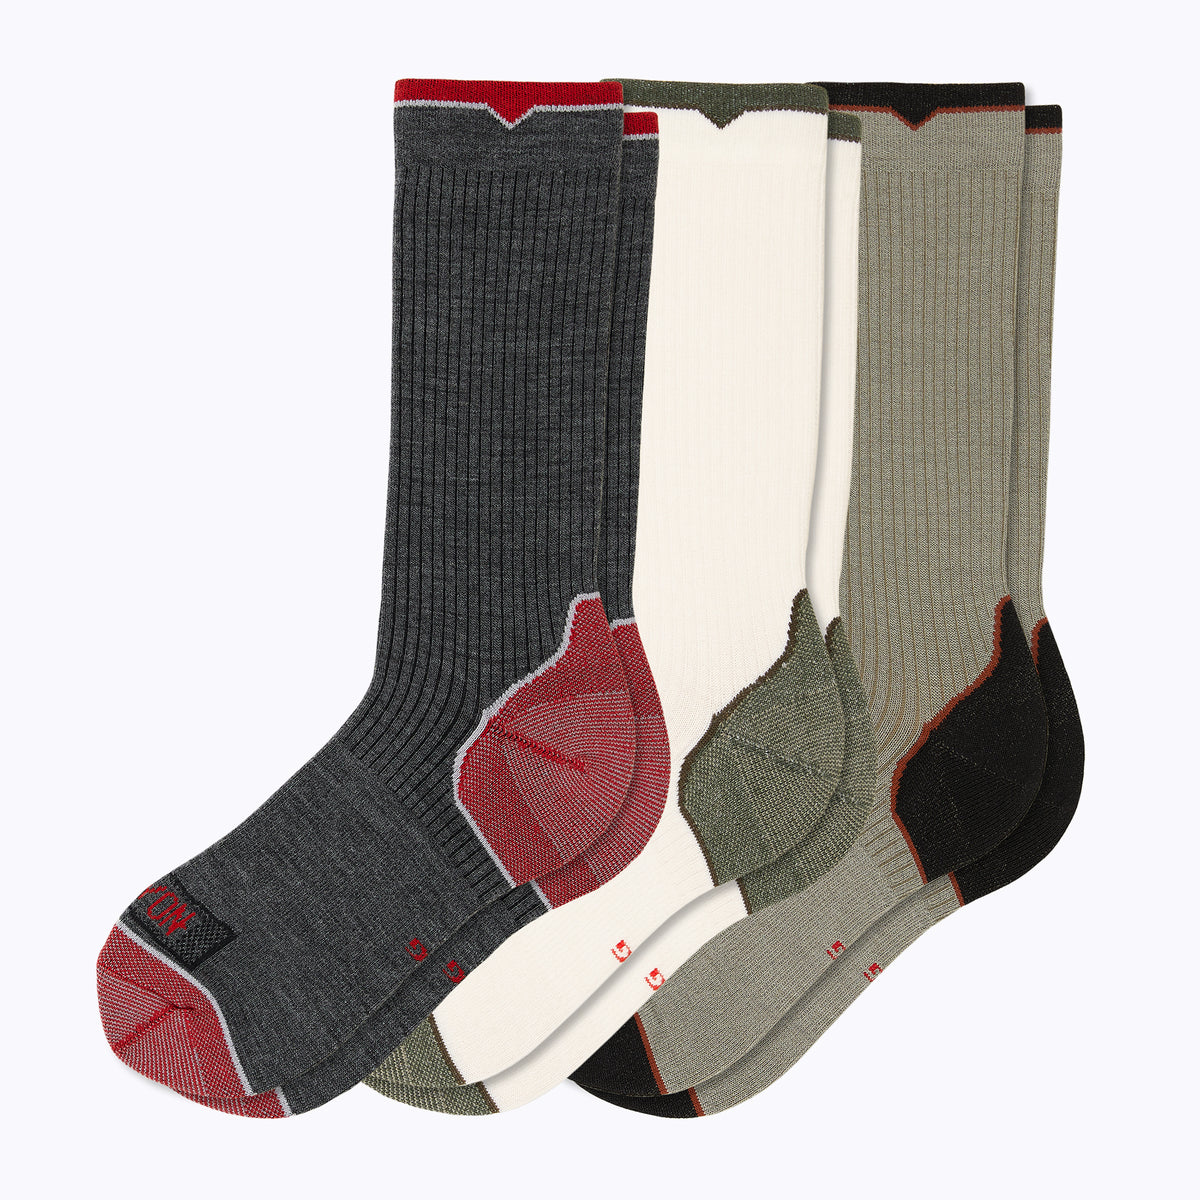 Essential 3 Pack Mix Men's Crew Socks - Mix by Canyon Socks